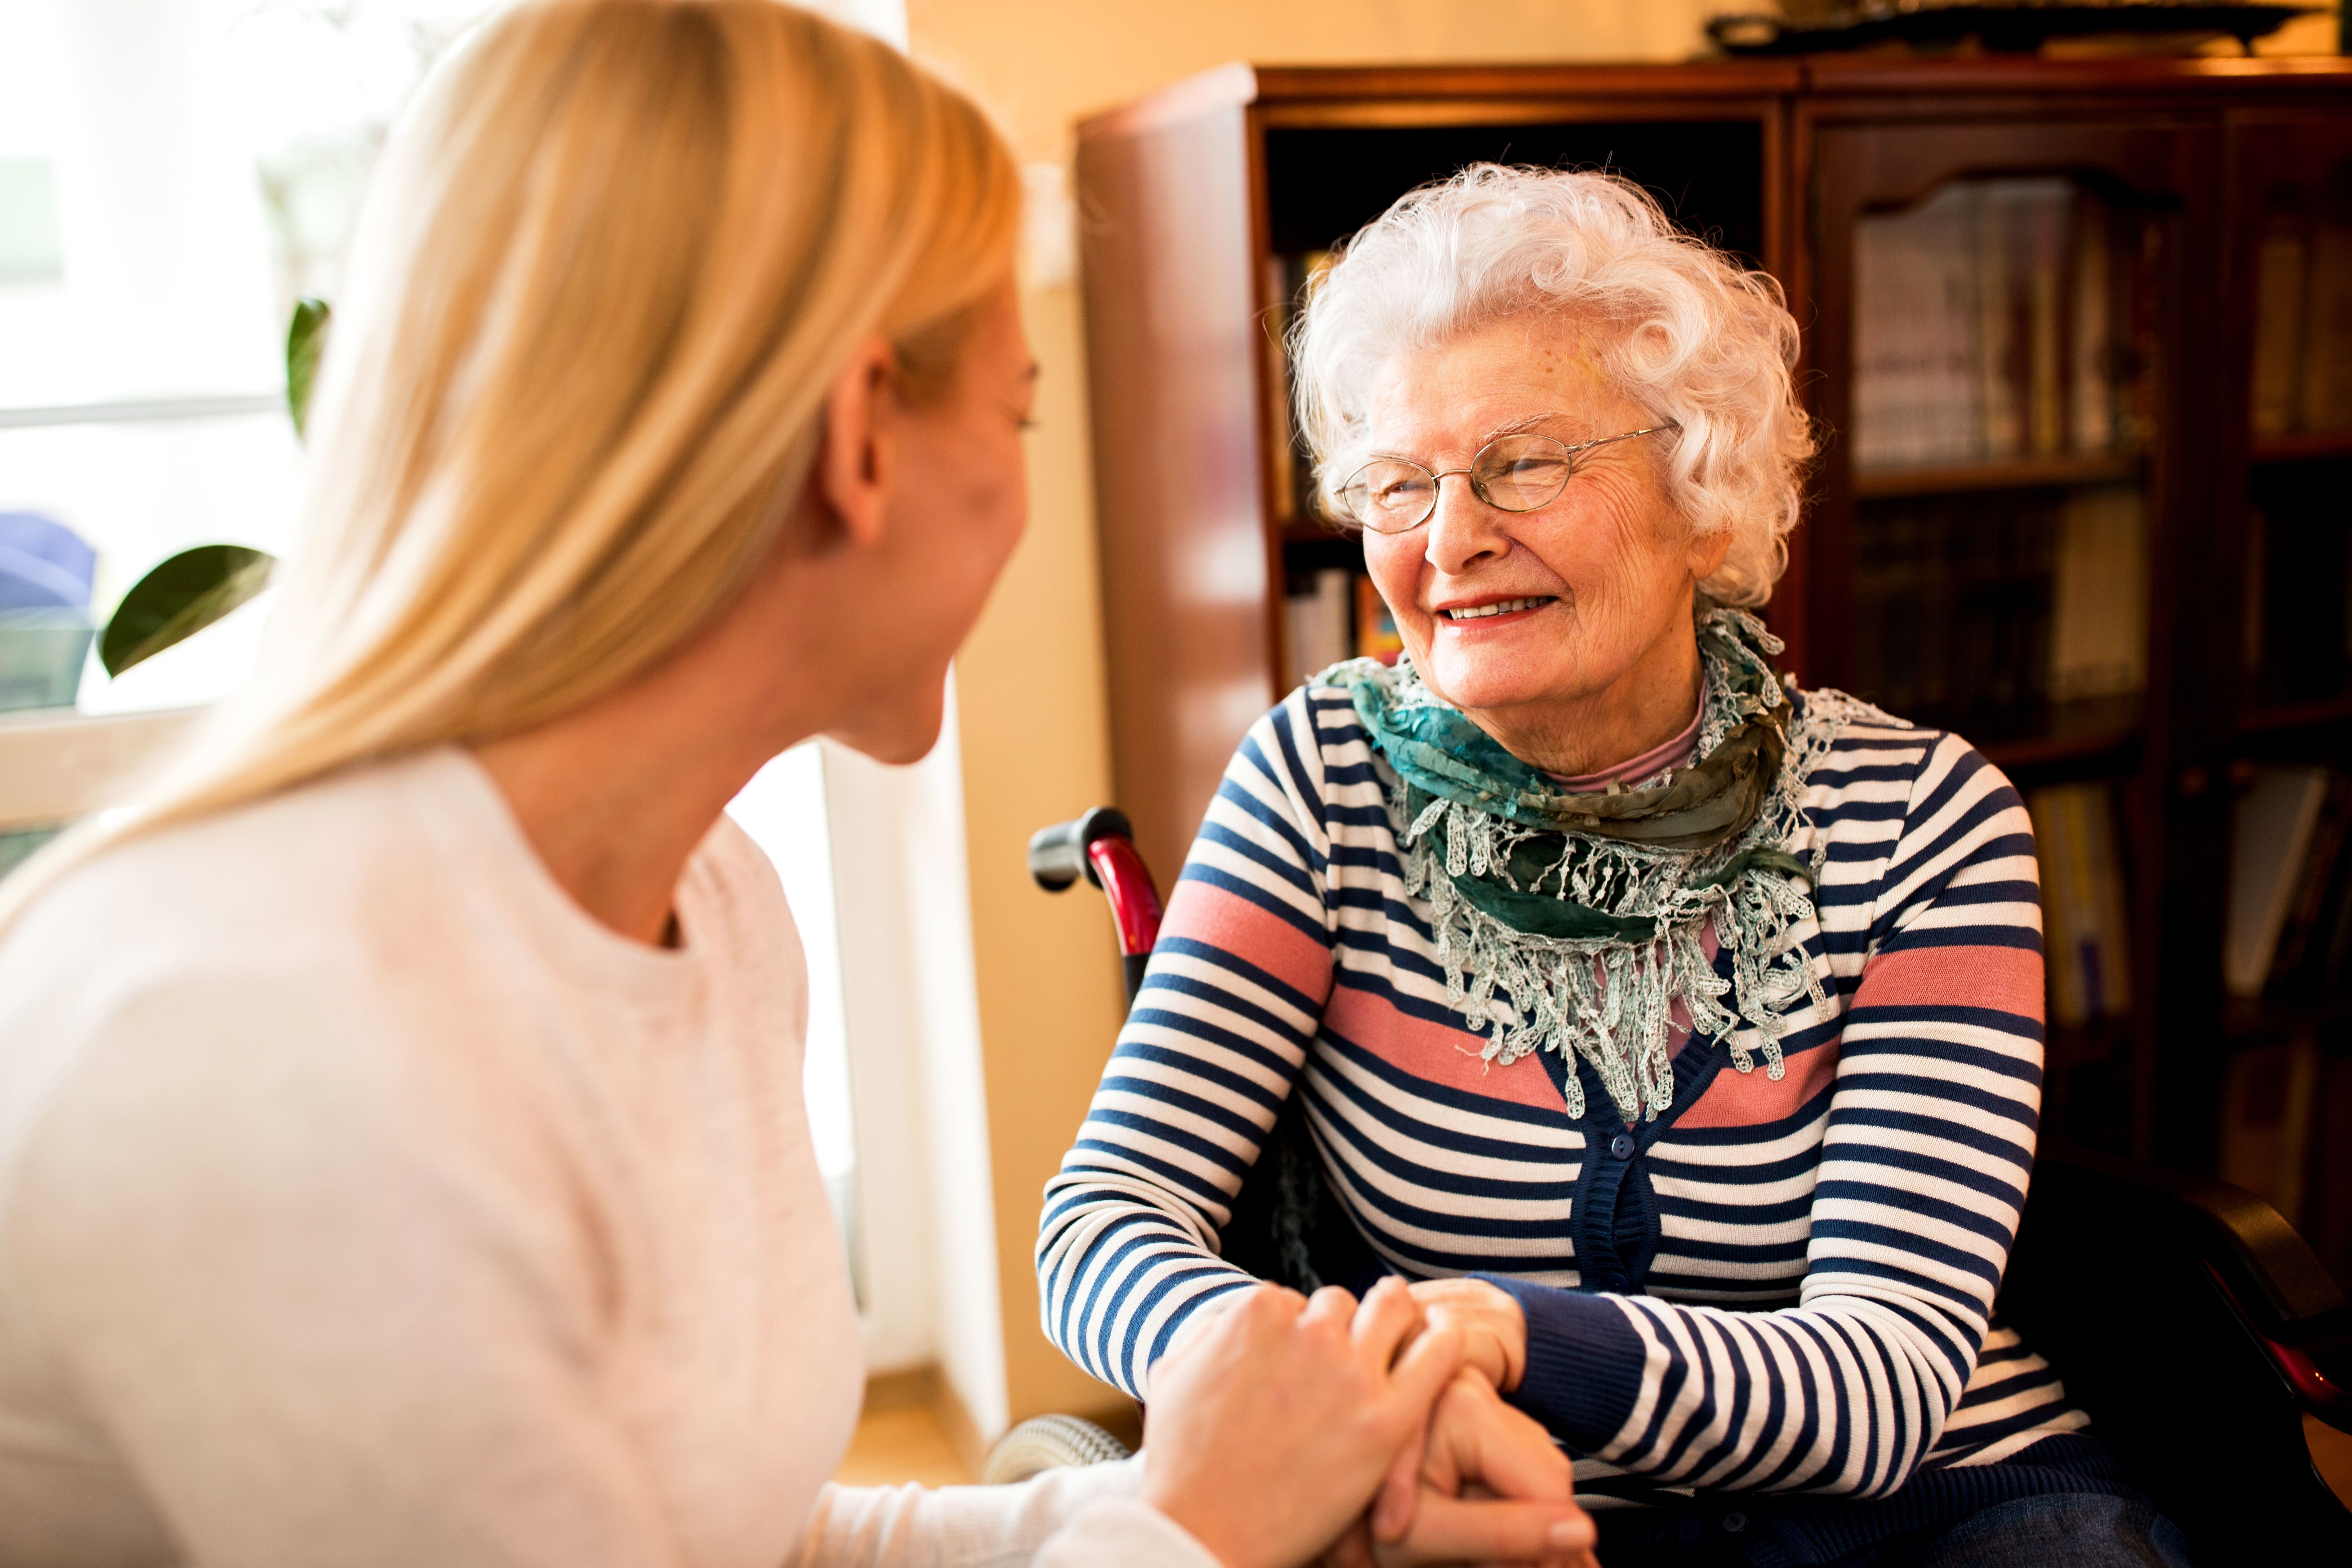 4 Things Your Memory Care Family Member Wants You To Know